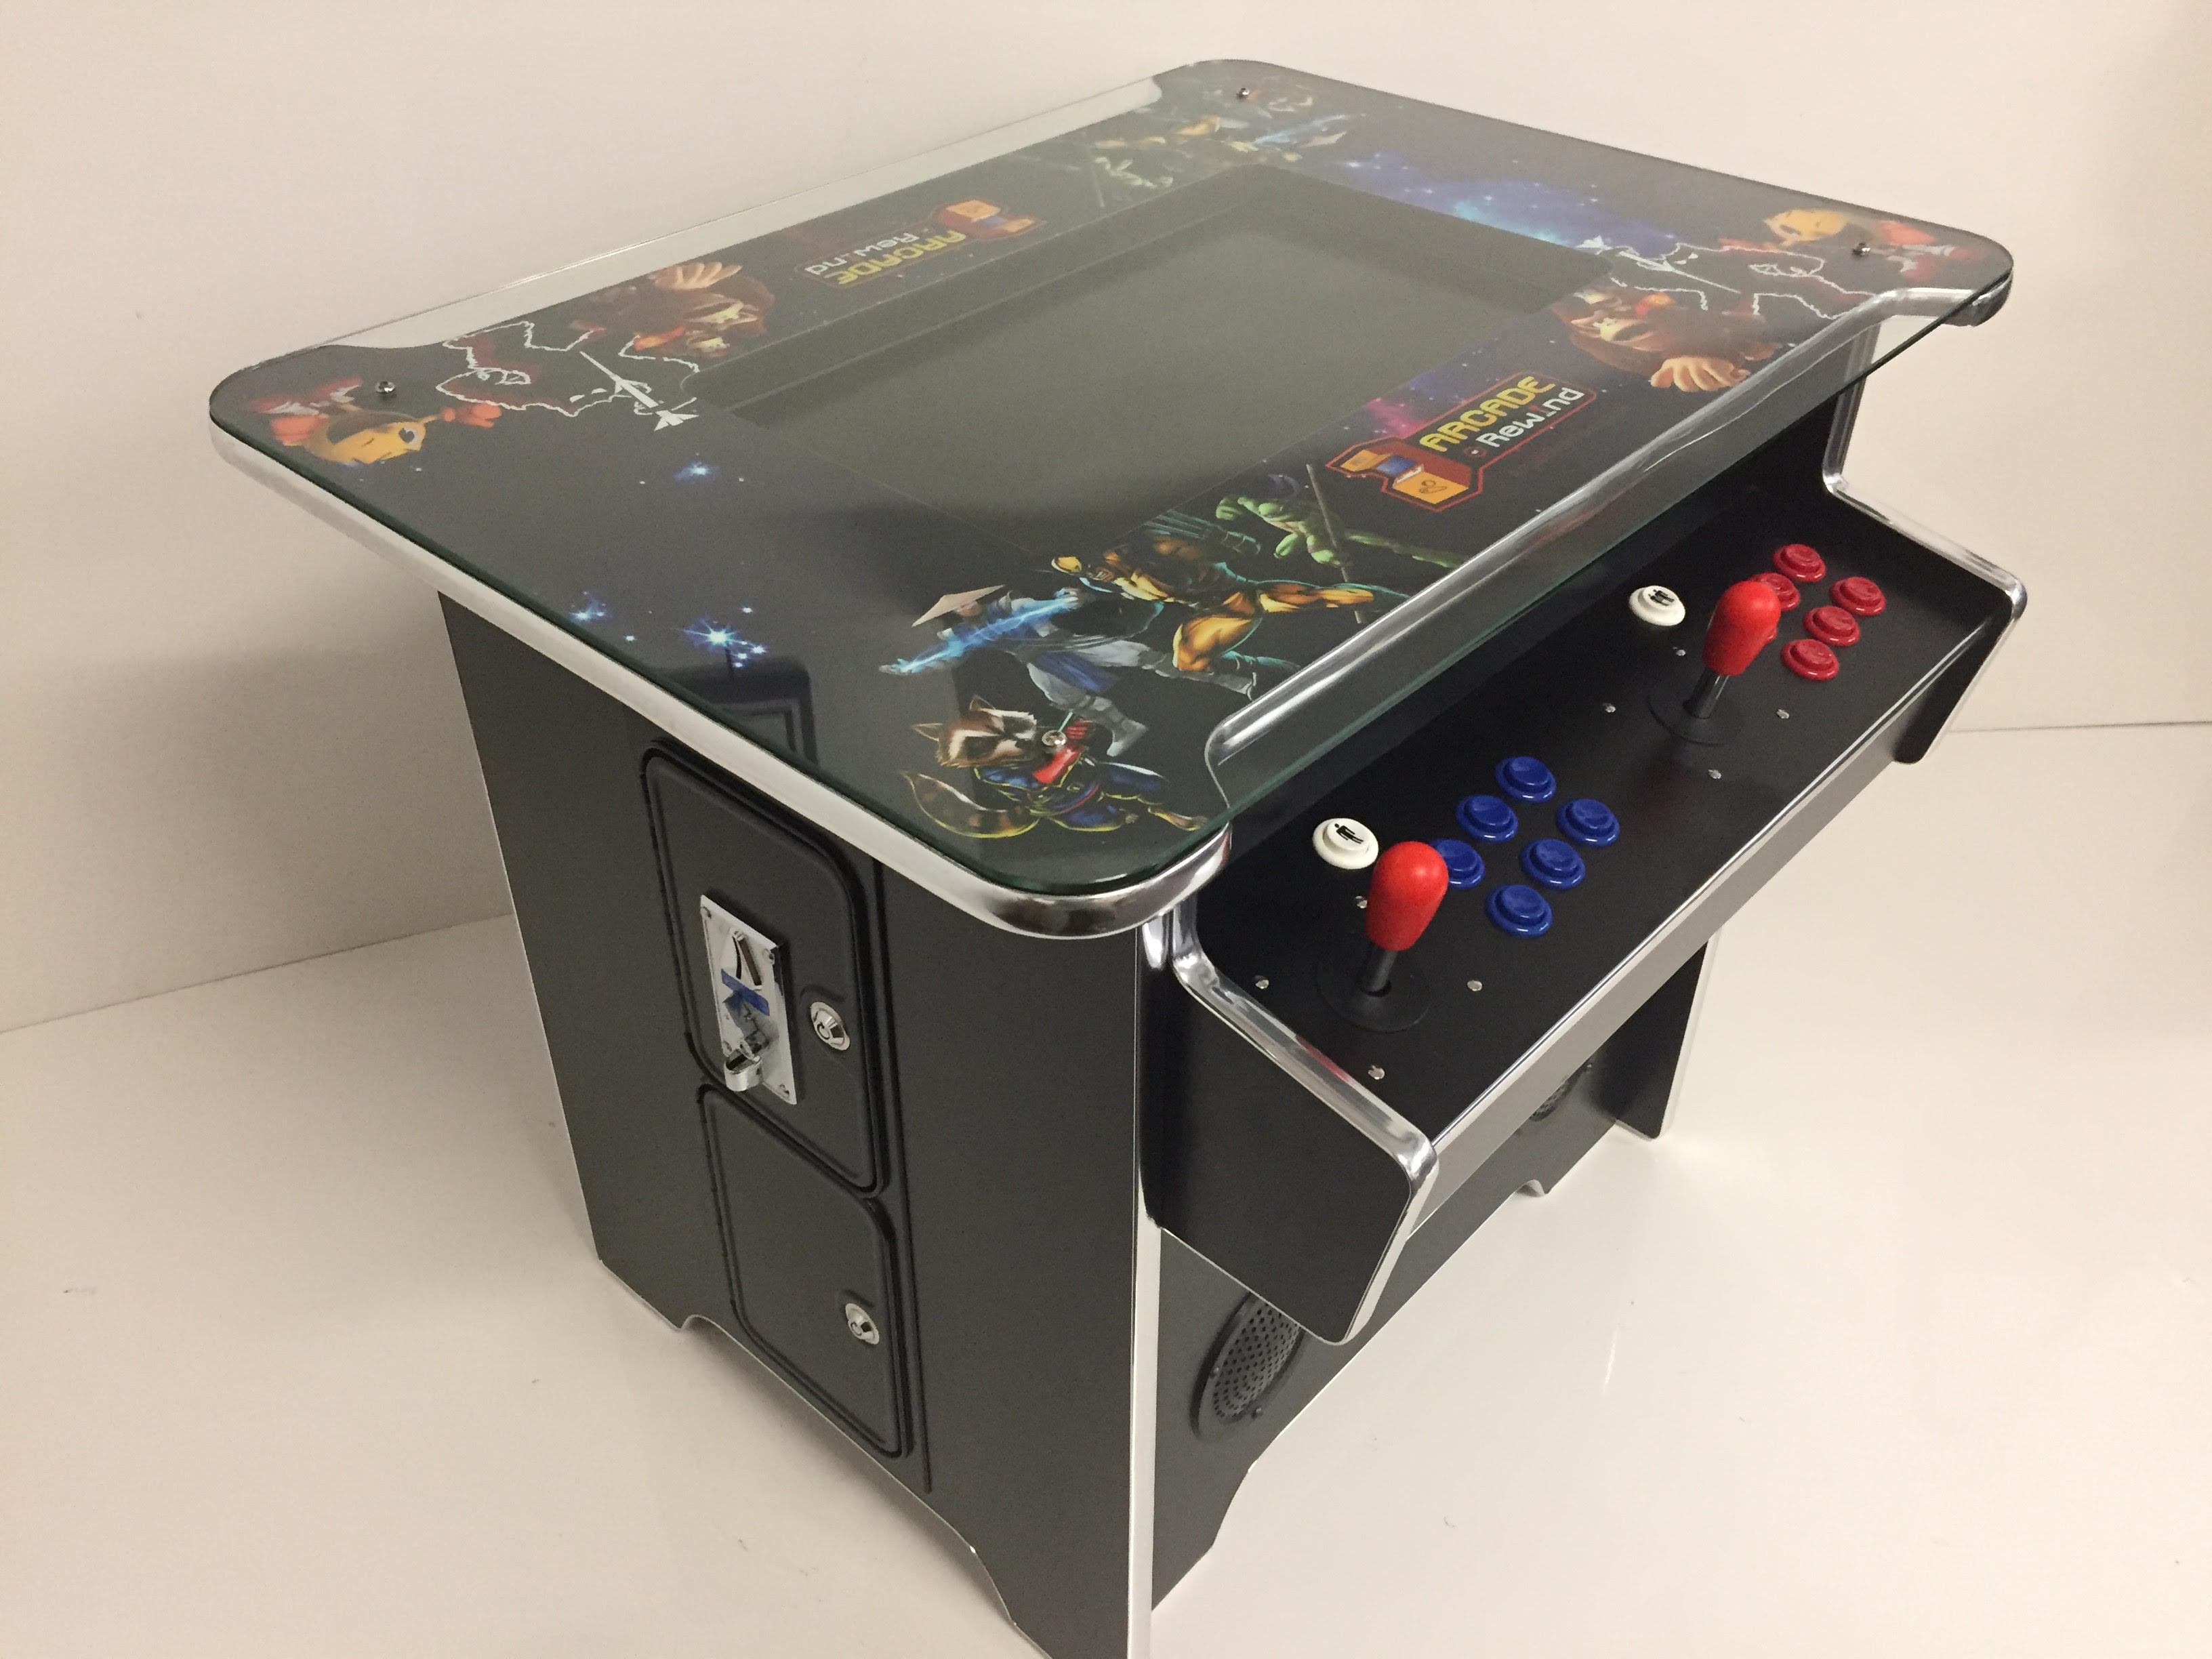 Arcade Rewind 2019 in 1 Cocktail Arcade Machine Perth